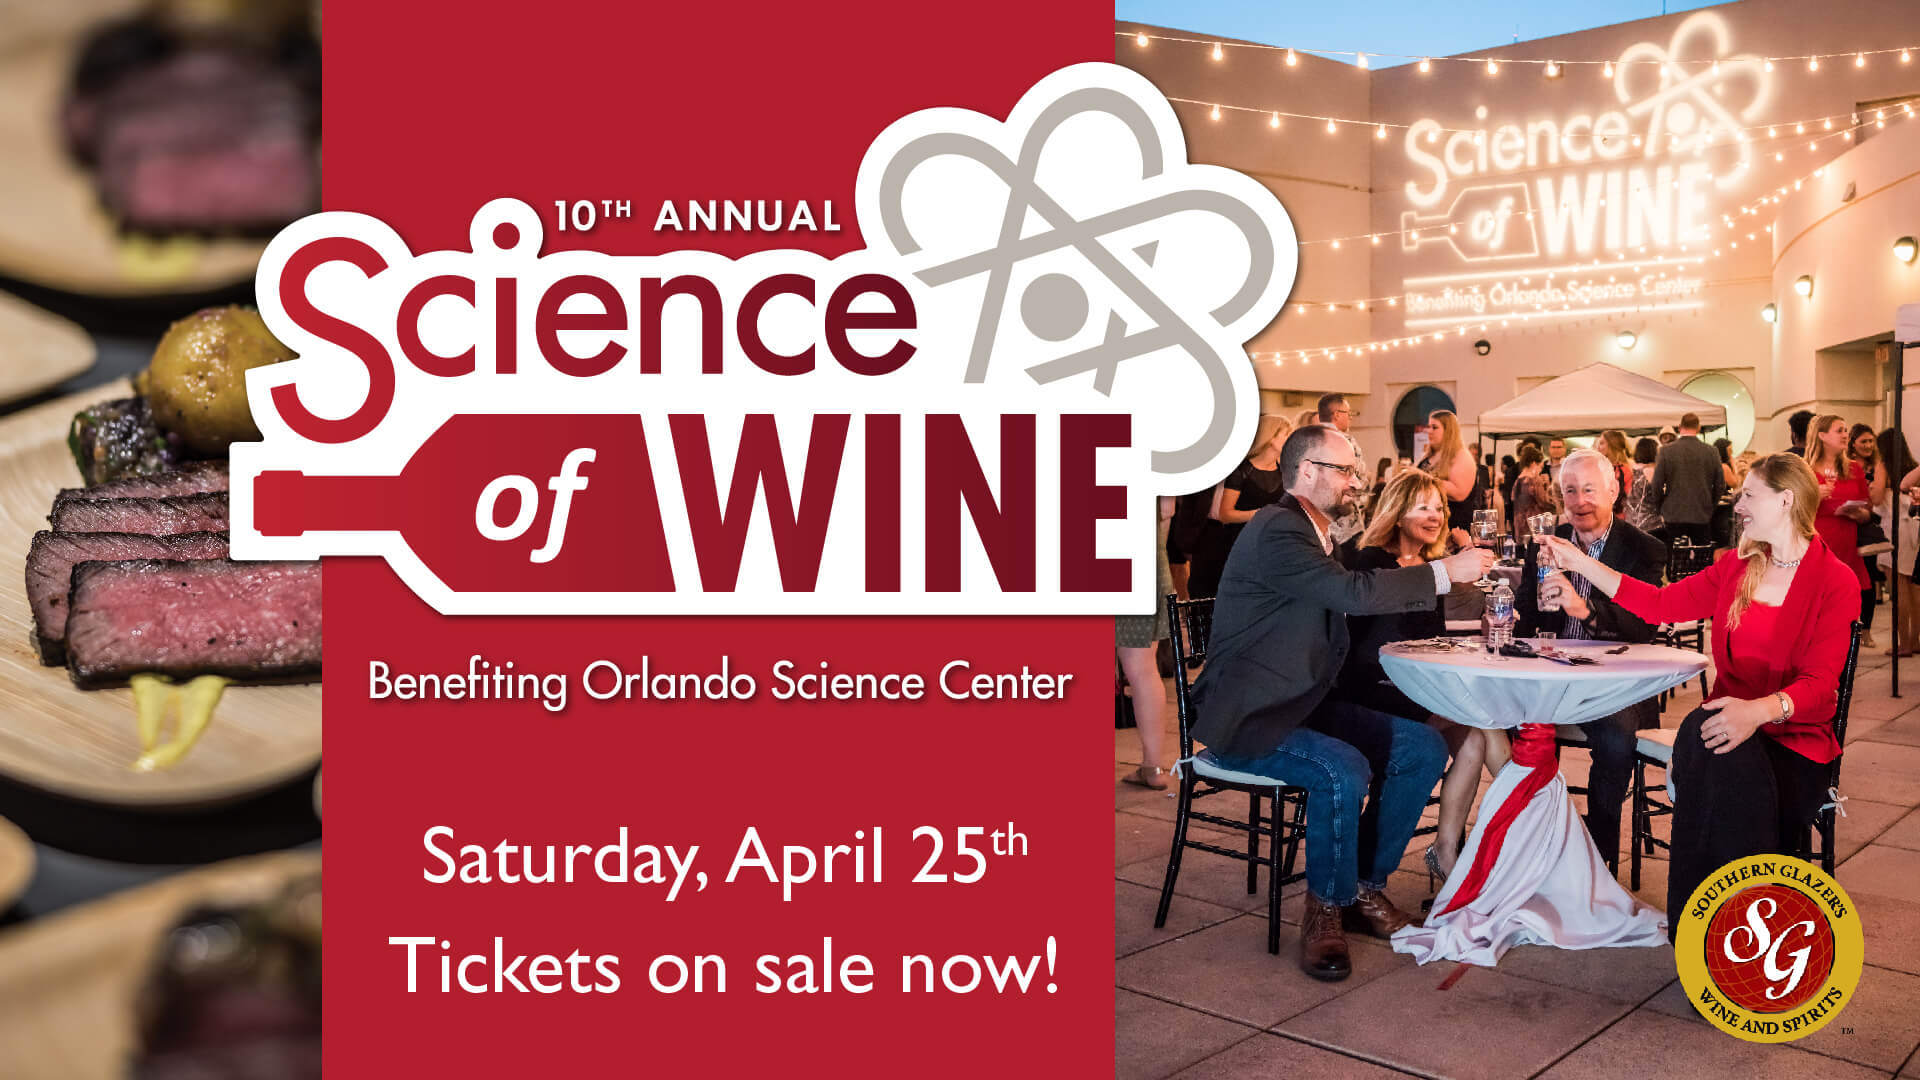 Science of Wine 2020 - Saturday, April 25